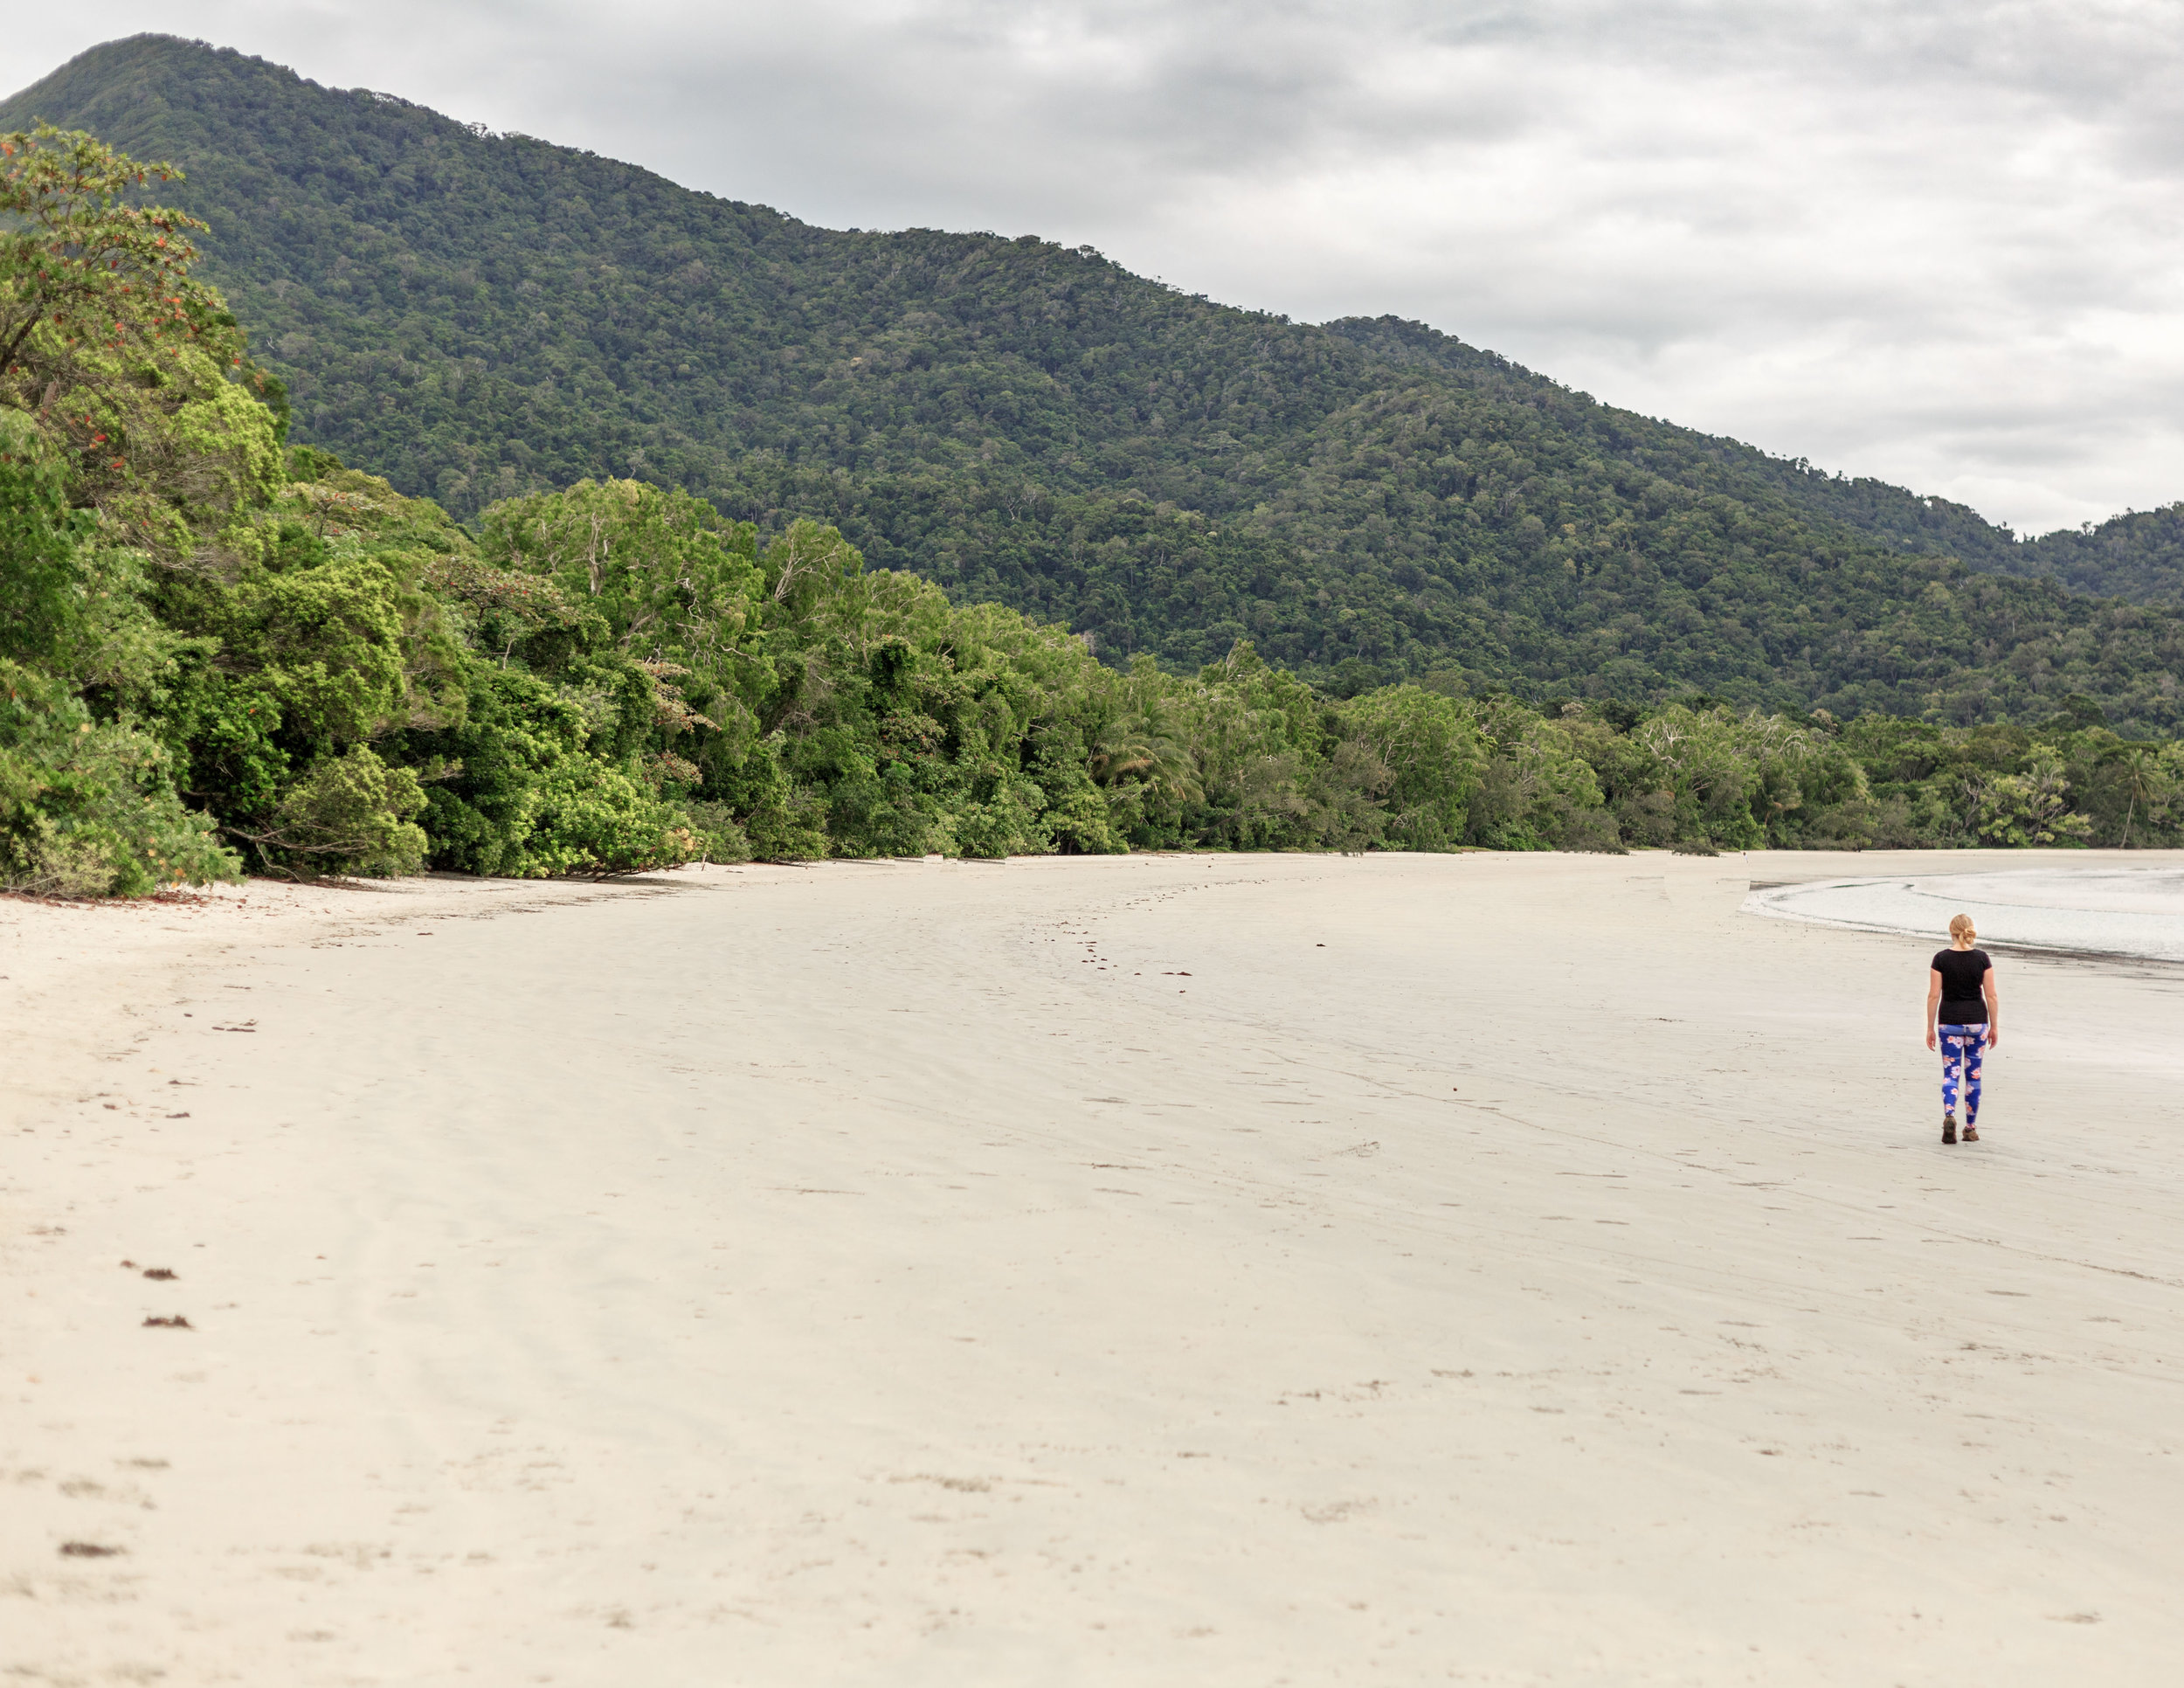 Cape Tribulation - Where to stay in the Daintree